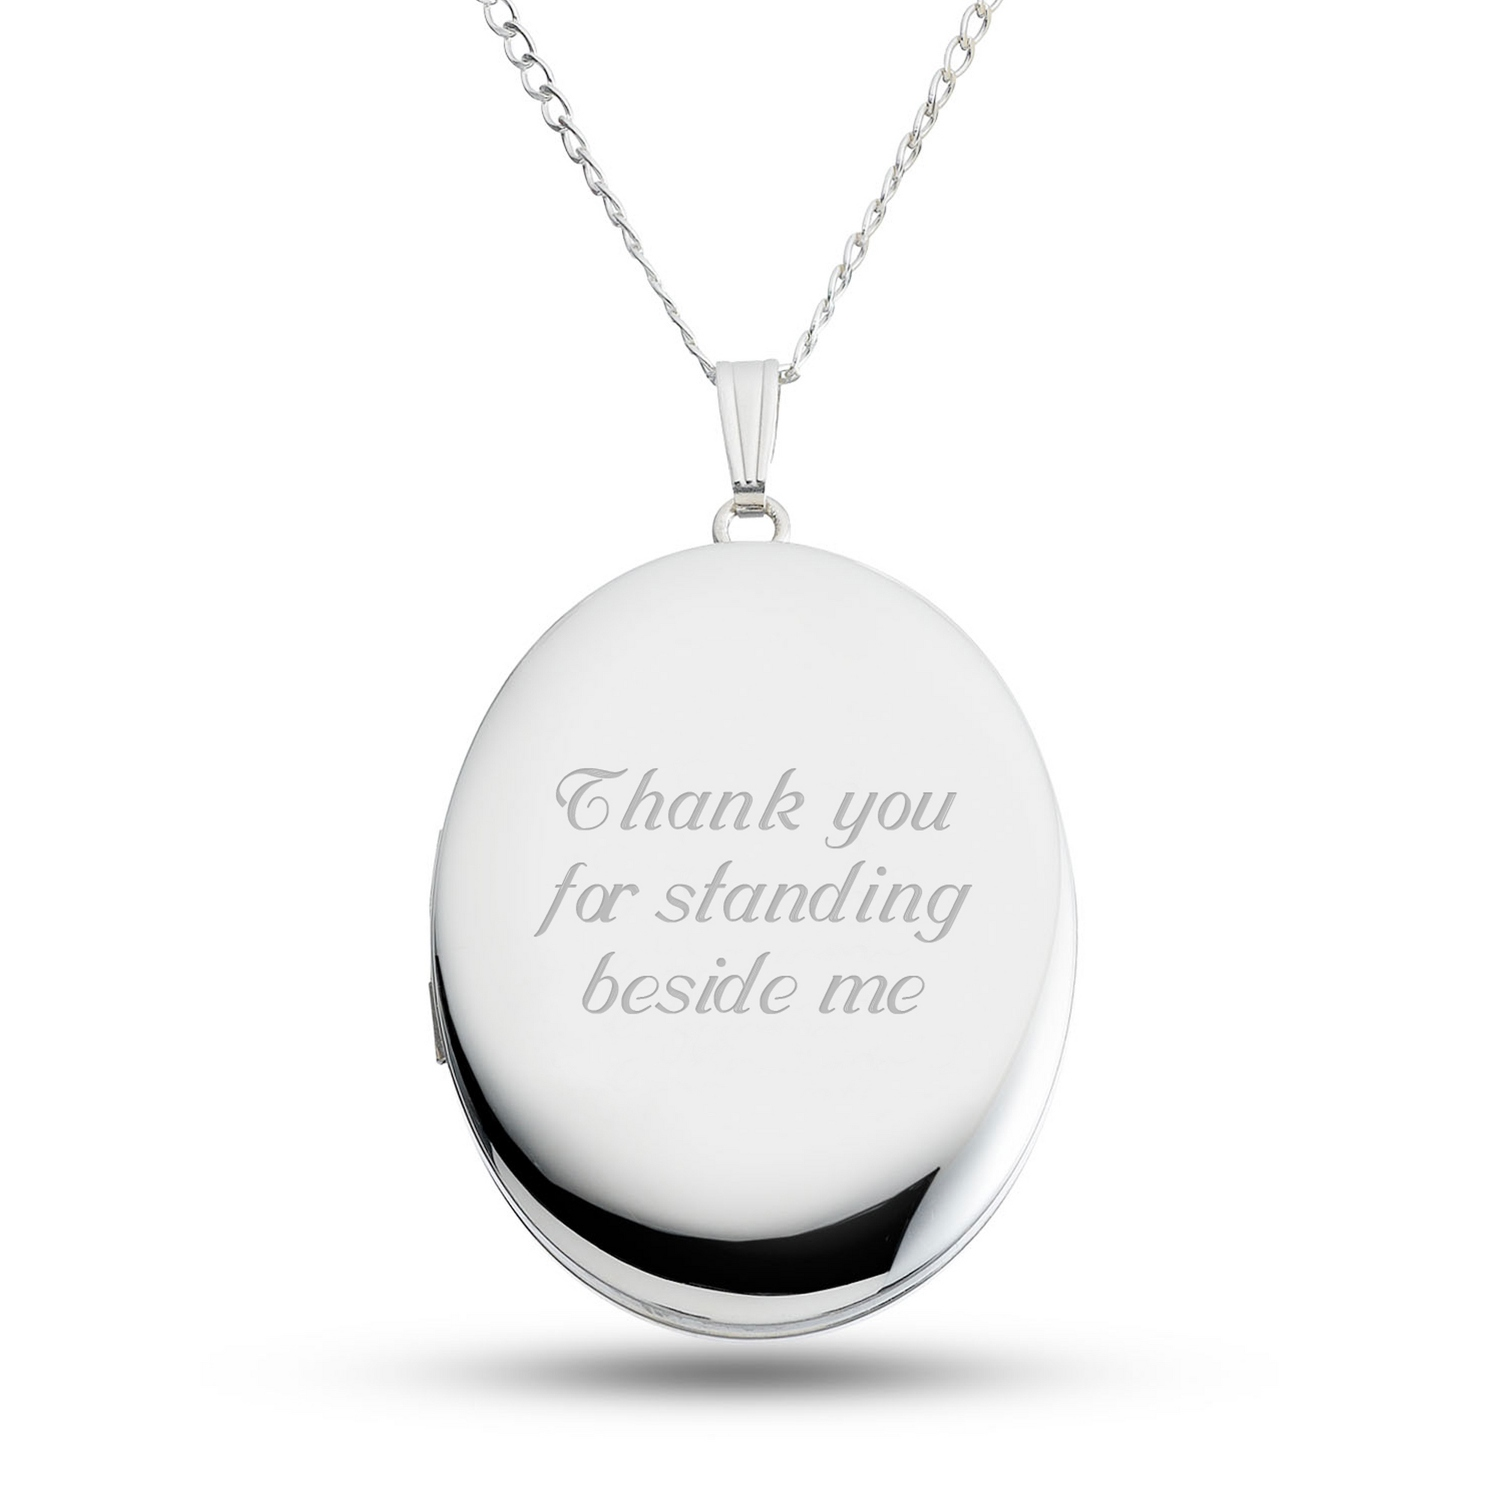 necklace remembered faith category silver for grandma sterling gifts at lockets personalized wid things